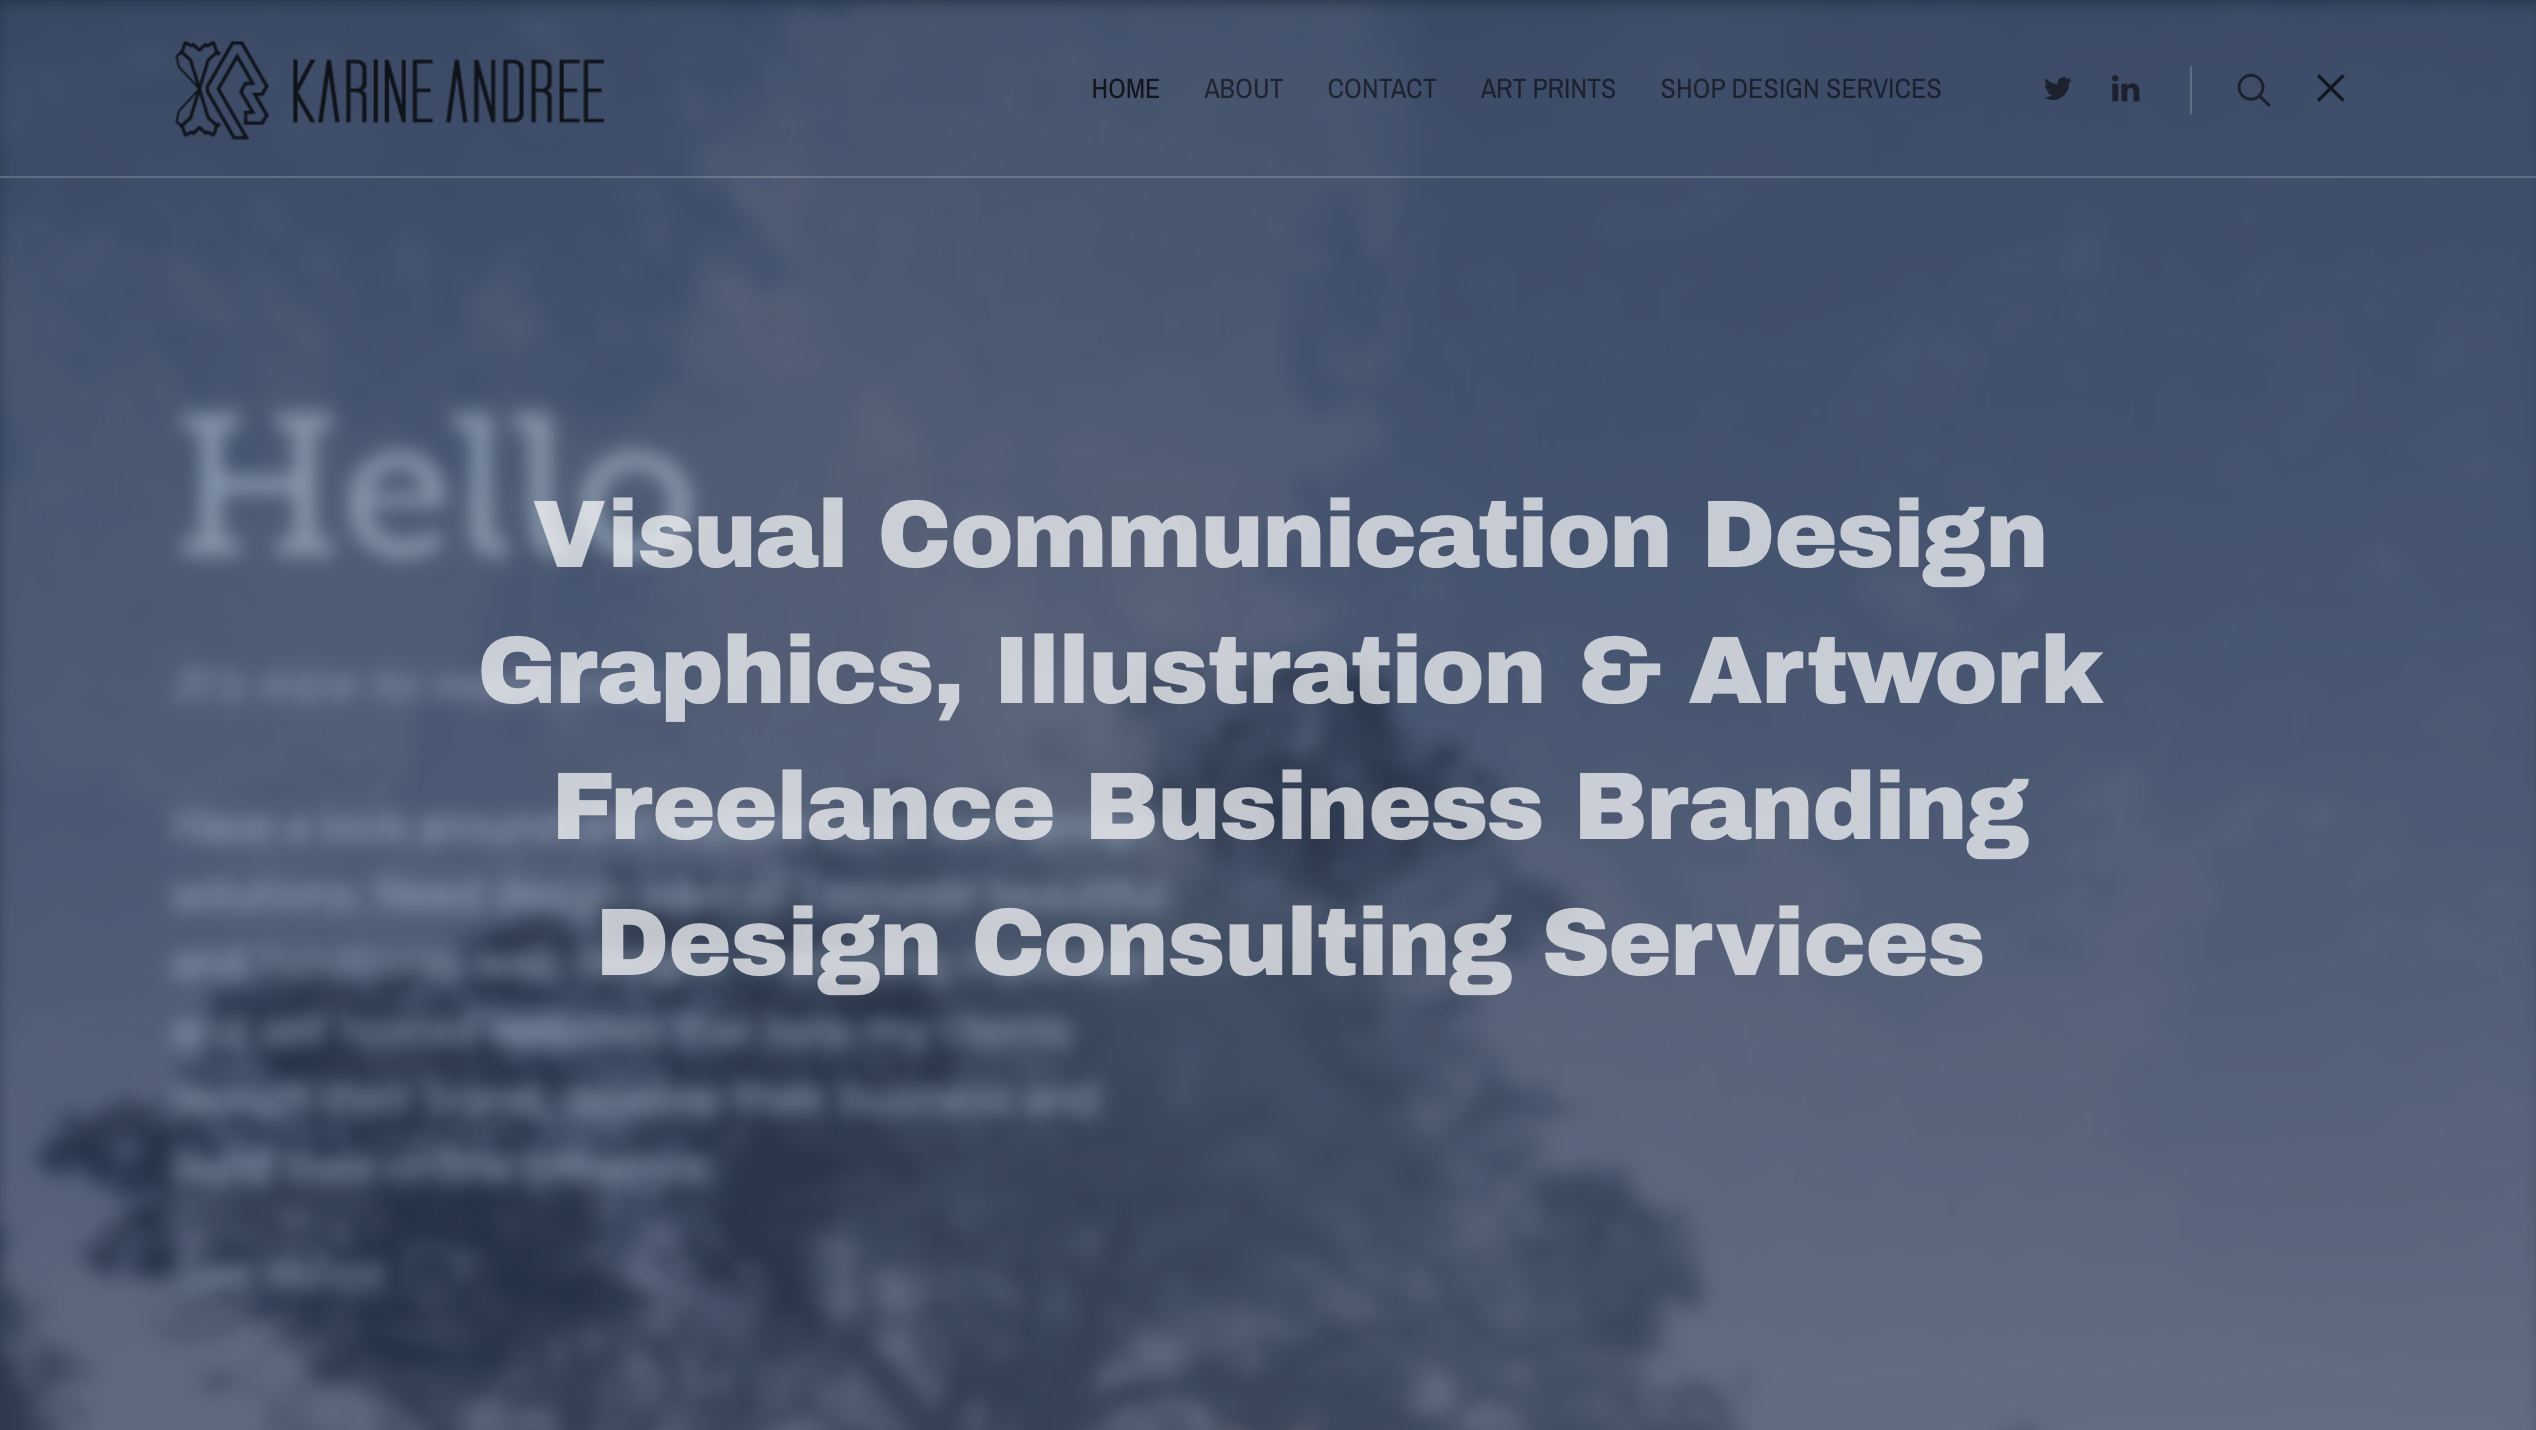 karineandree-design-services